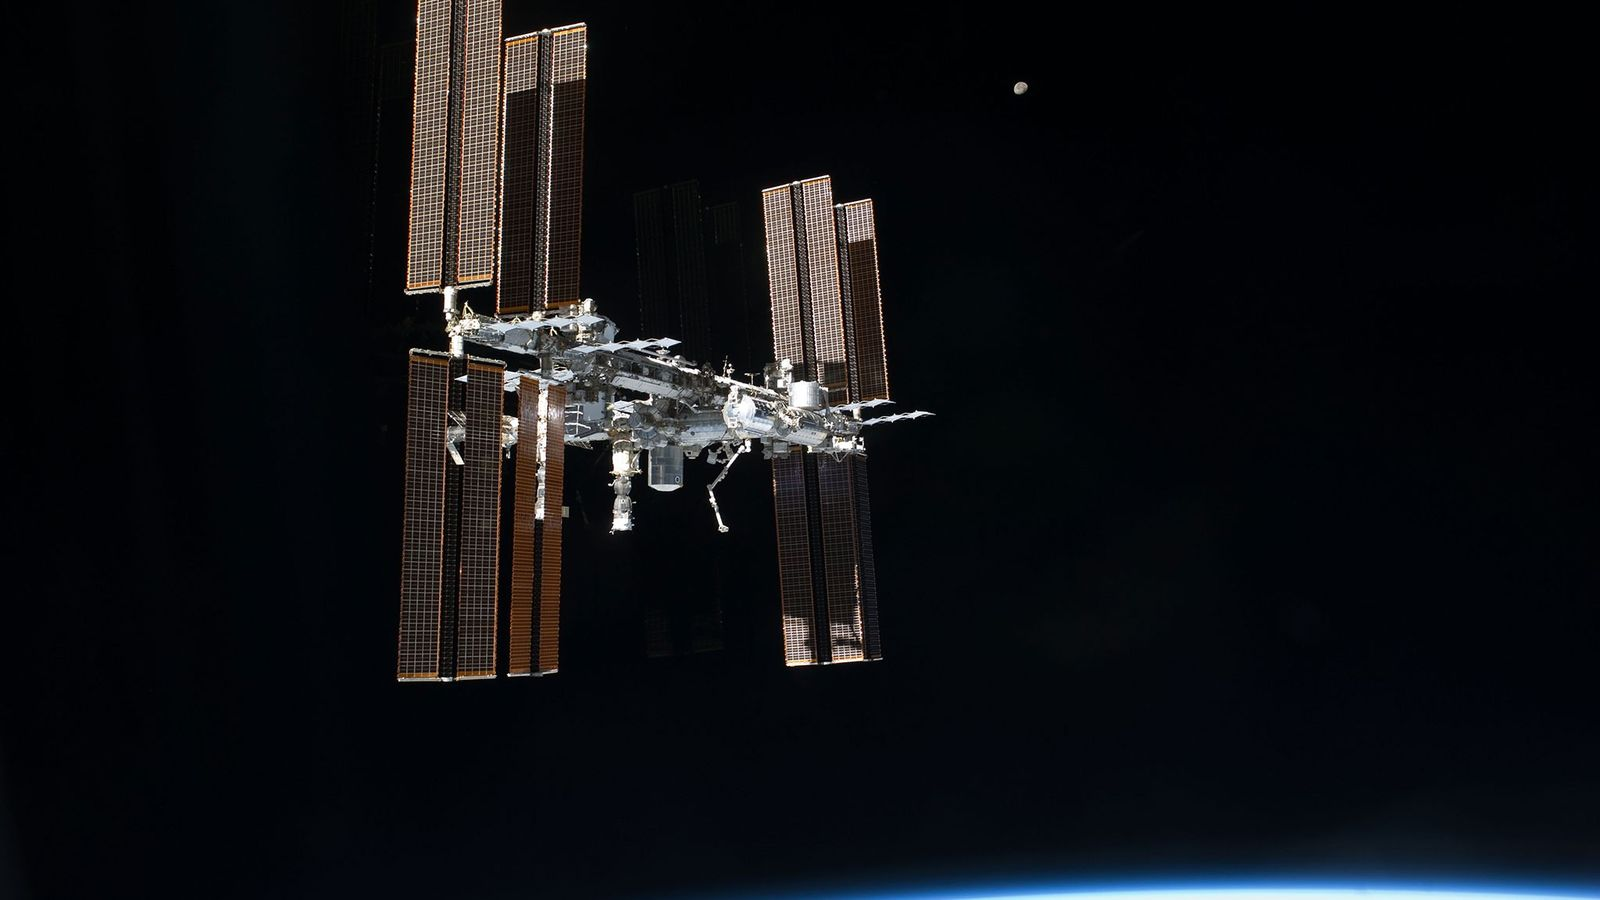 The International Space Station floats above planet Earth.